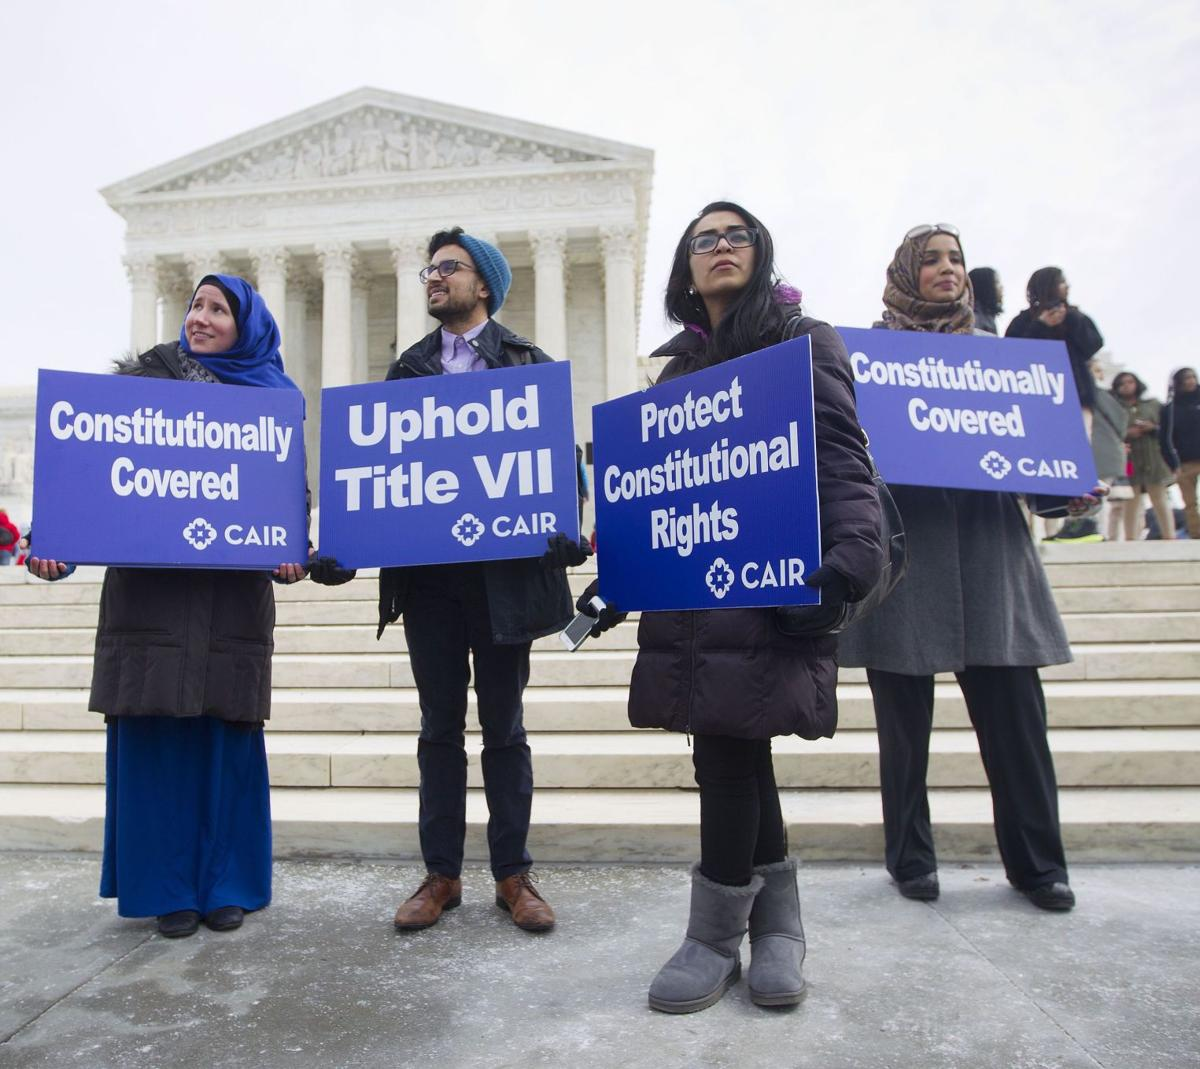 In a case of religious dress, justices explore the obligations of employers